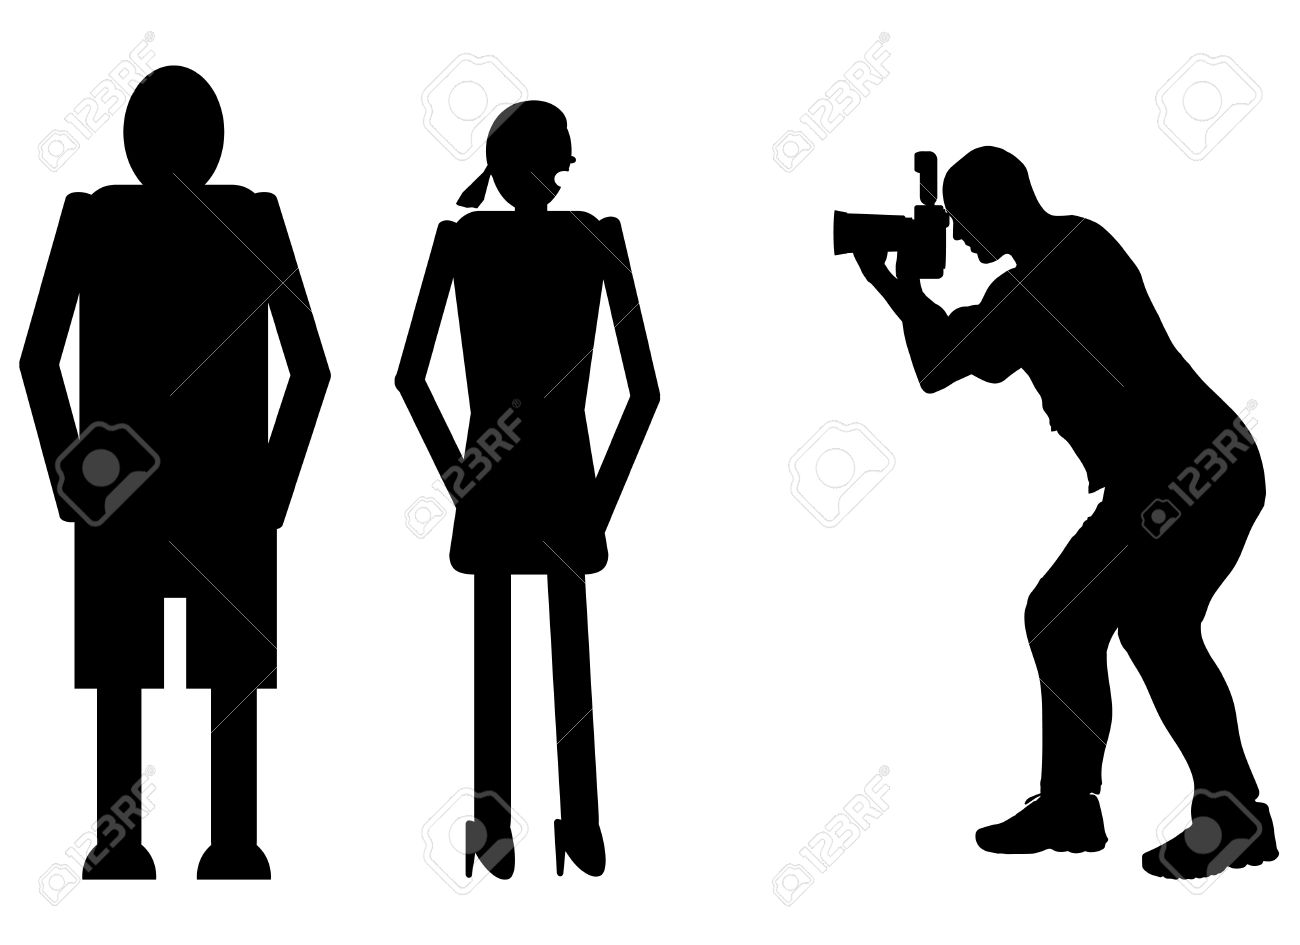 funny silhouette photographer at work like paparazzi stock vector 41755799